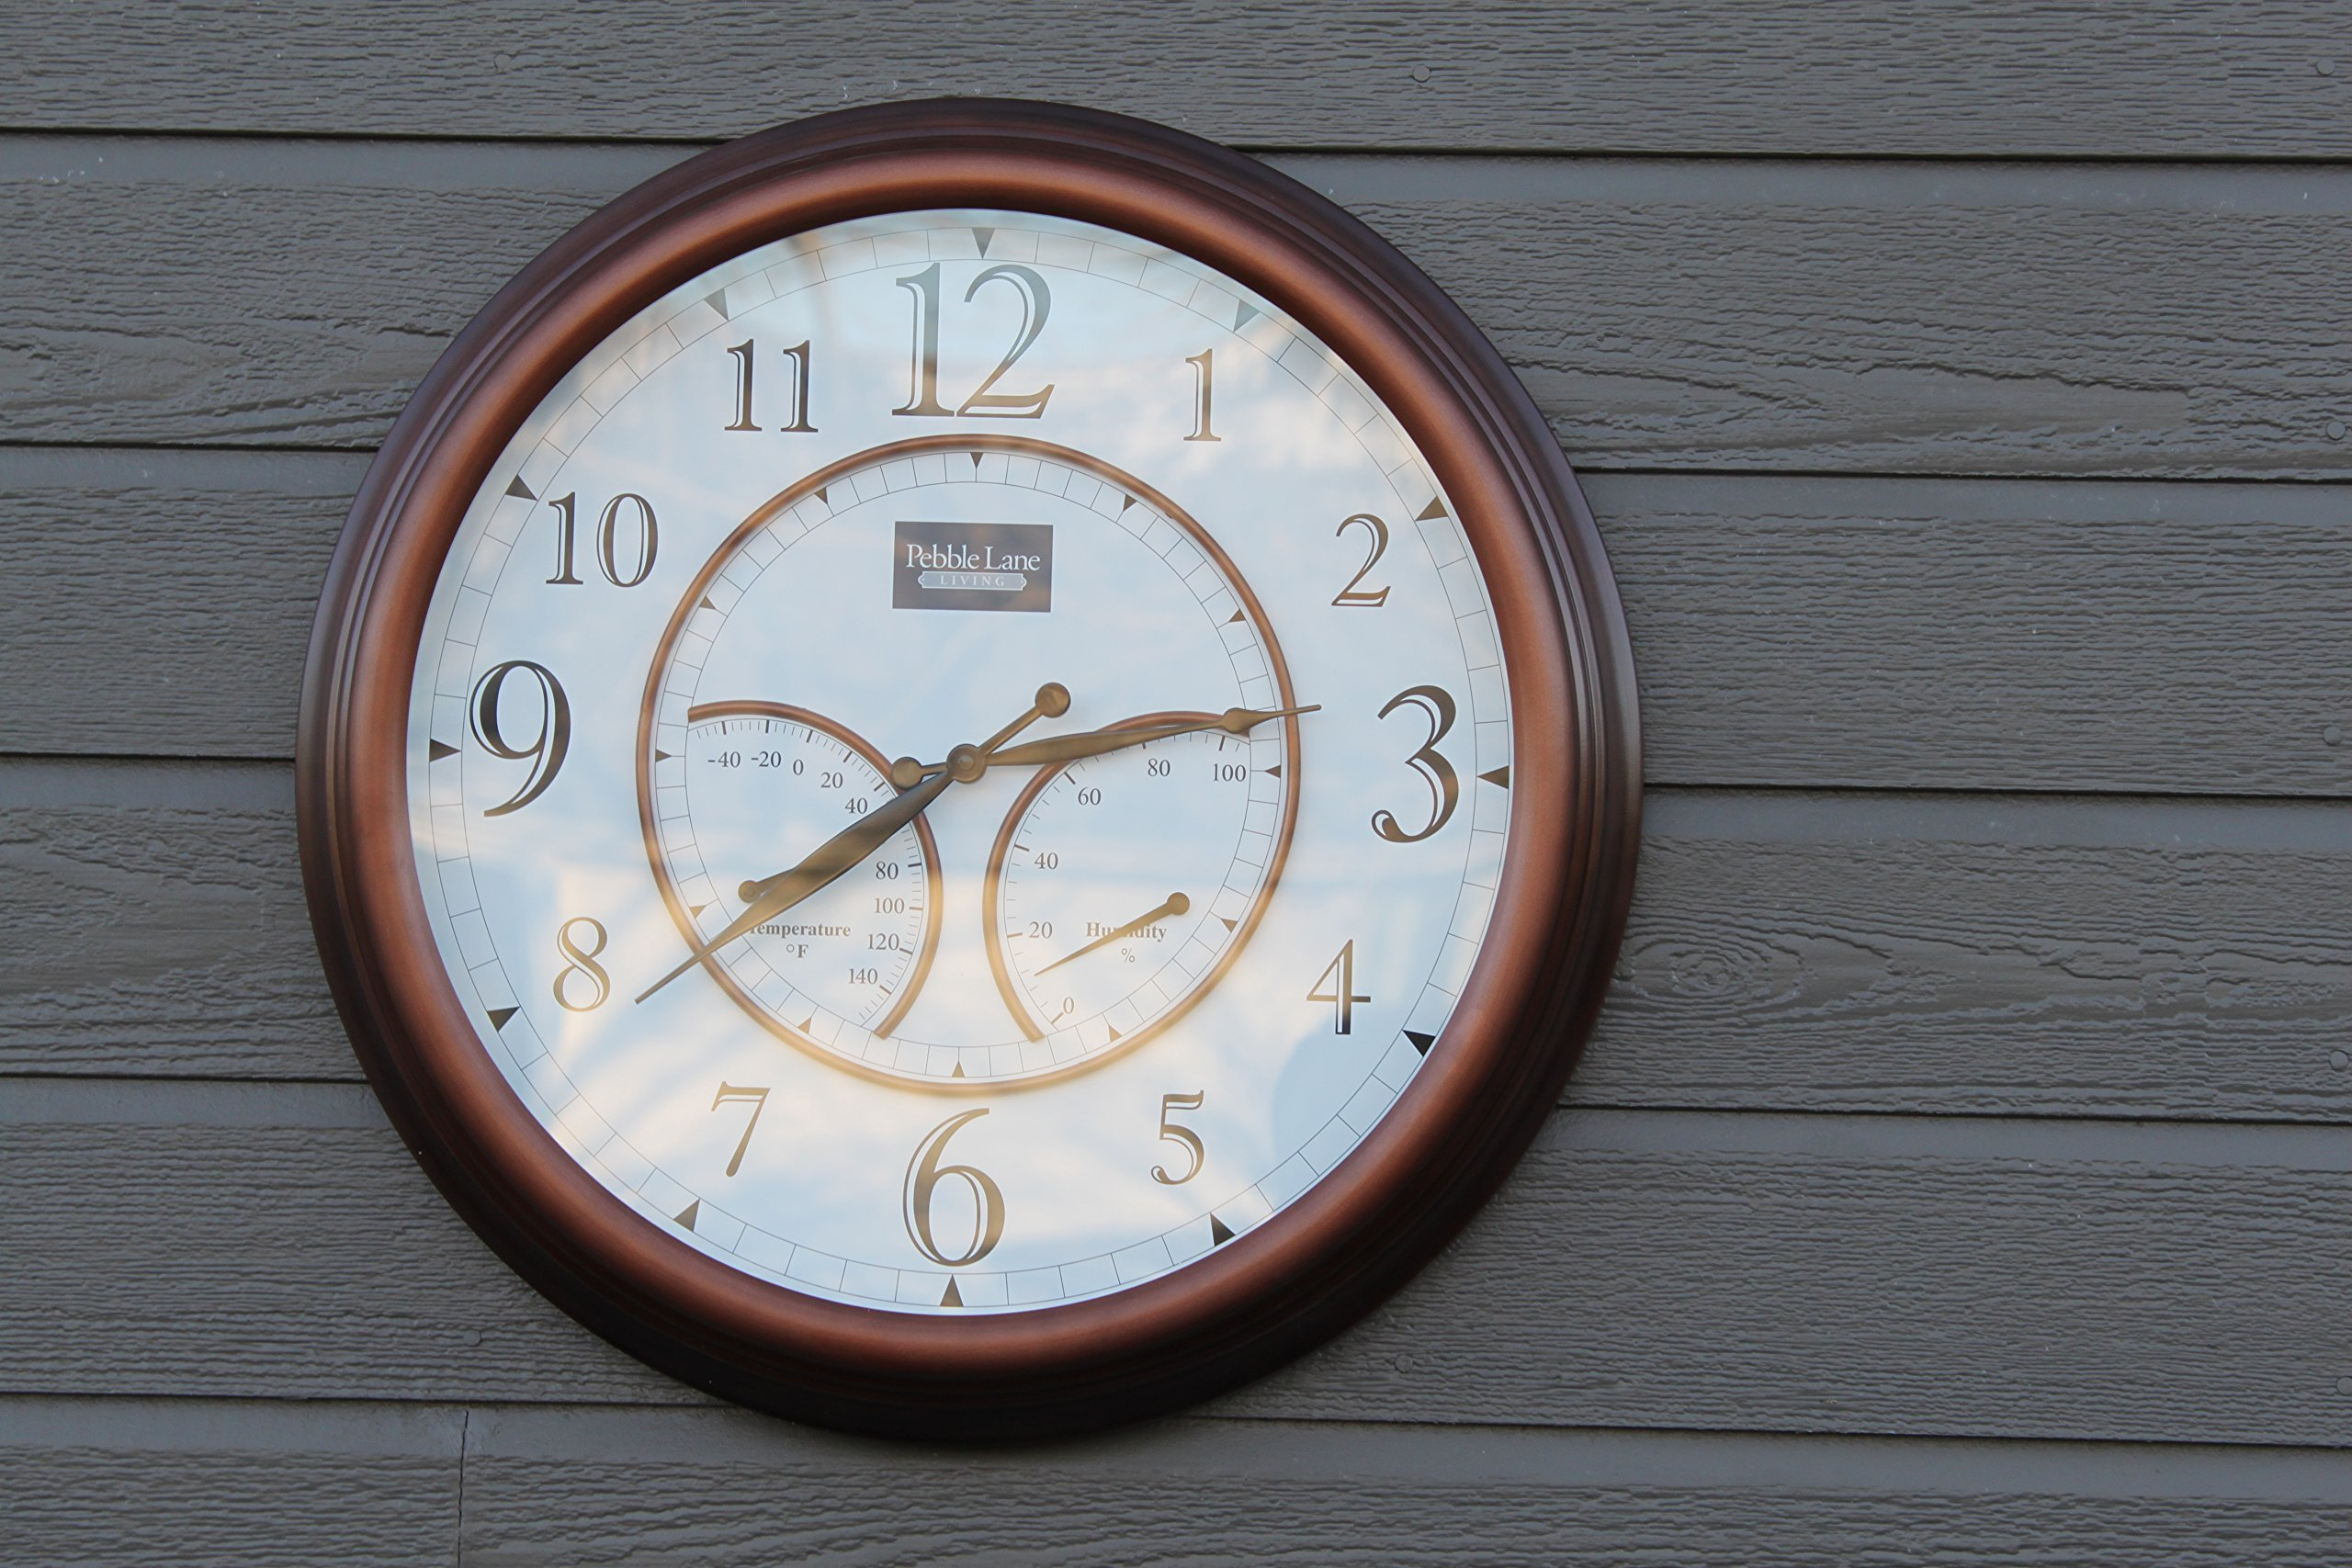 Oxford Outdoor Waterproof Clock with Thermometer and Hydrometer- Pebble Lane Living (24'')